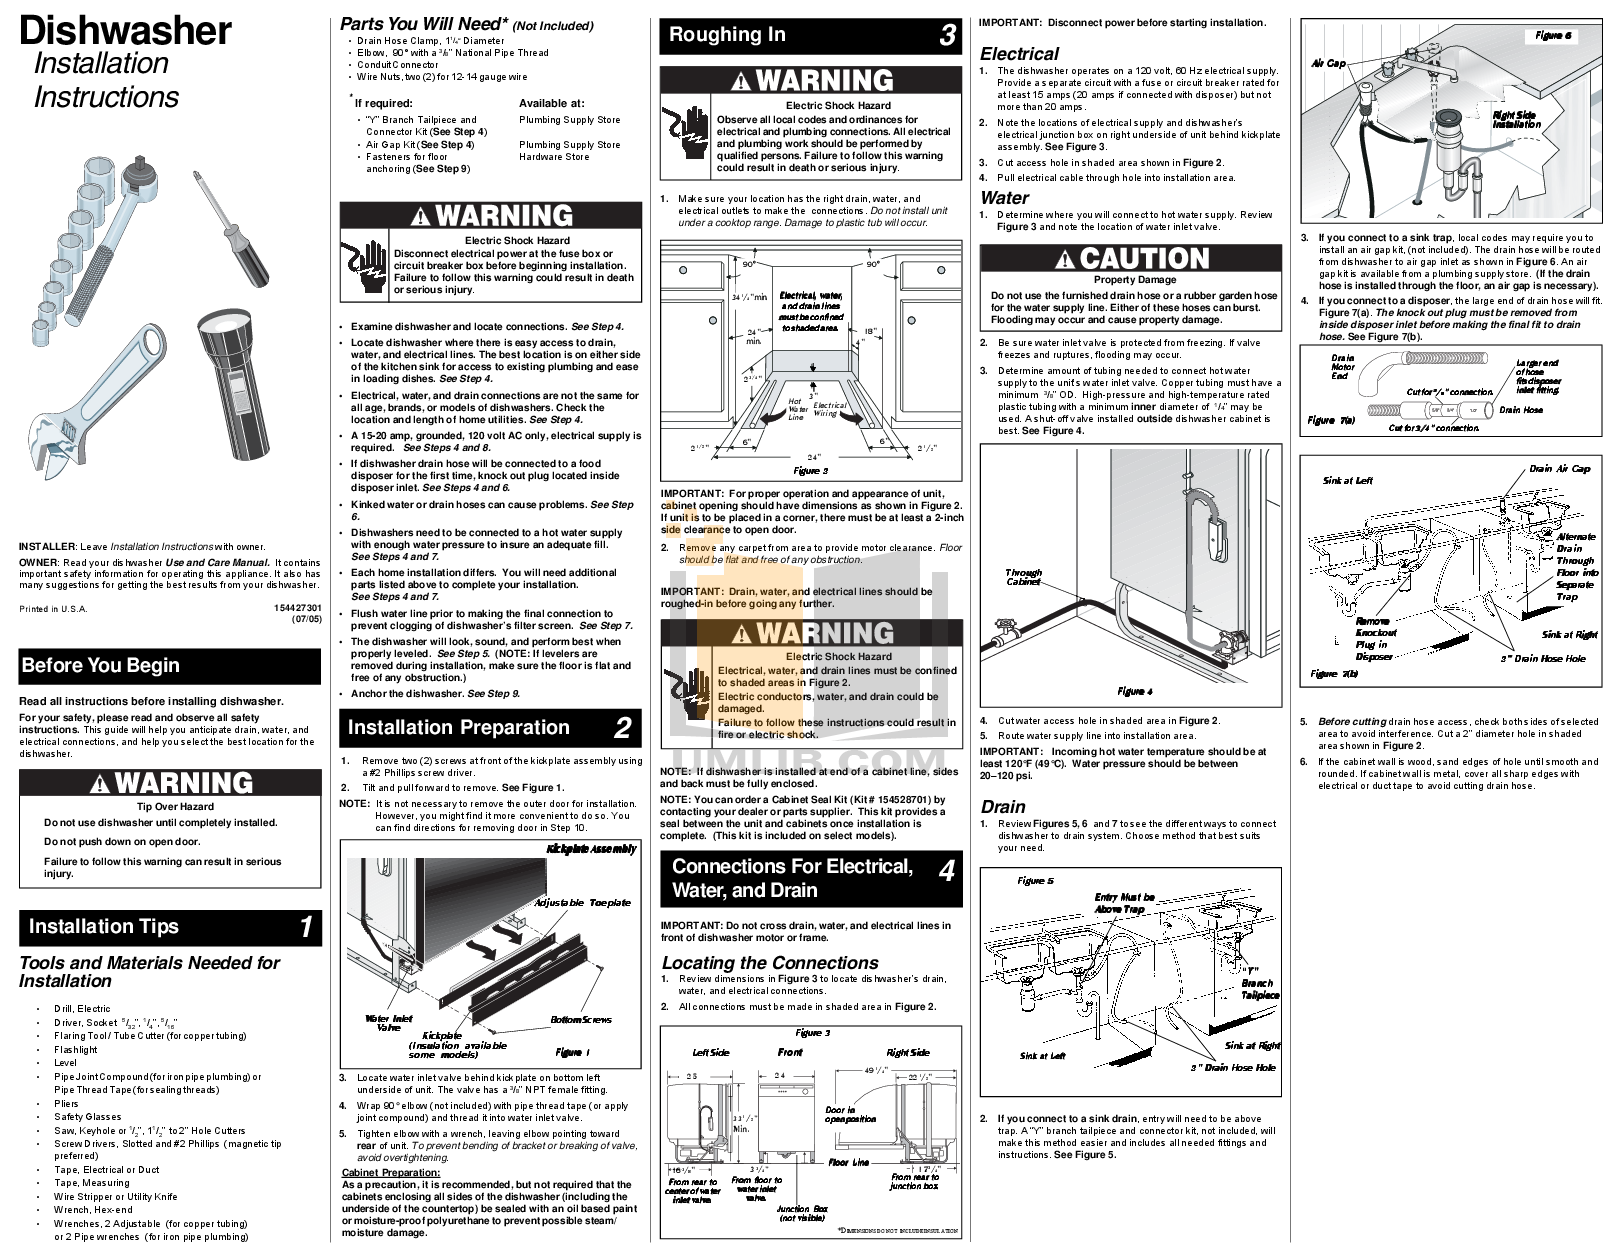 Download Free Pdf For Frigidaire Fphd2491kf Dishwasher Manual Range Wiring Diagram